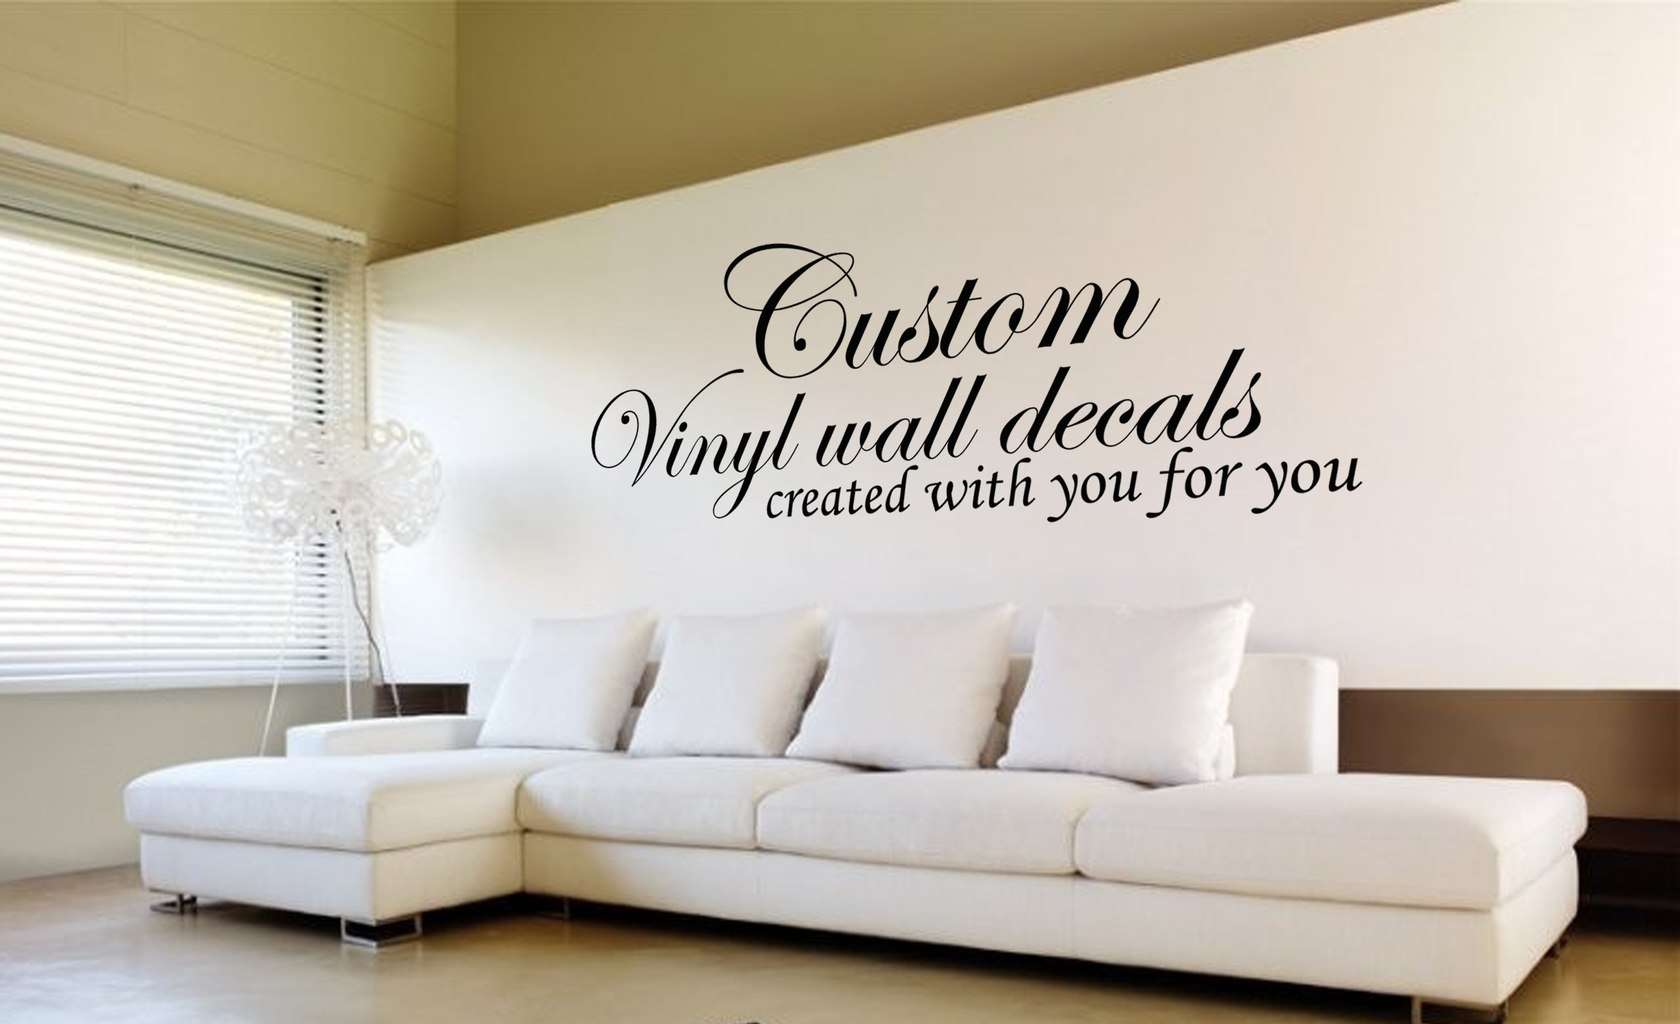 Design your own quote custom wall art decals design your own quote custom wall